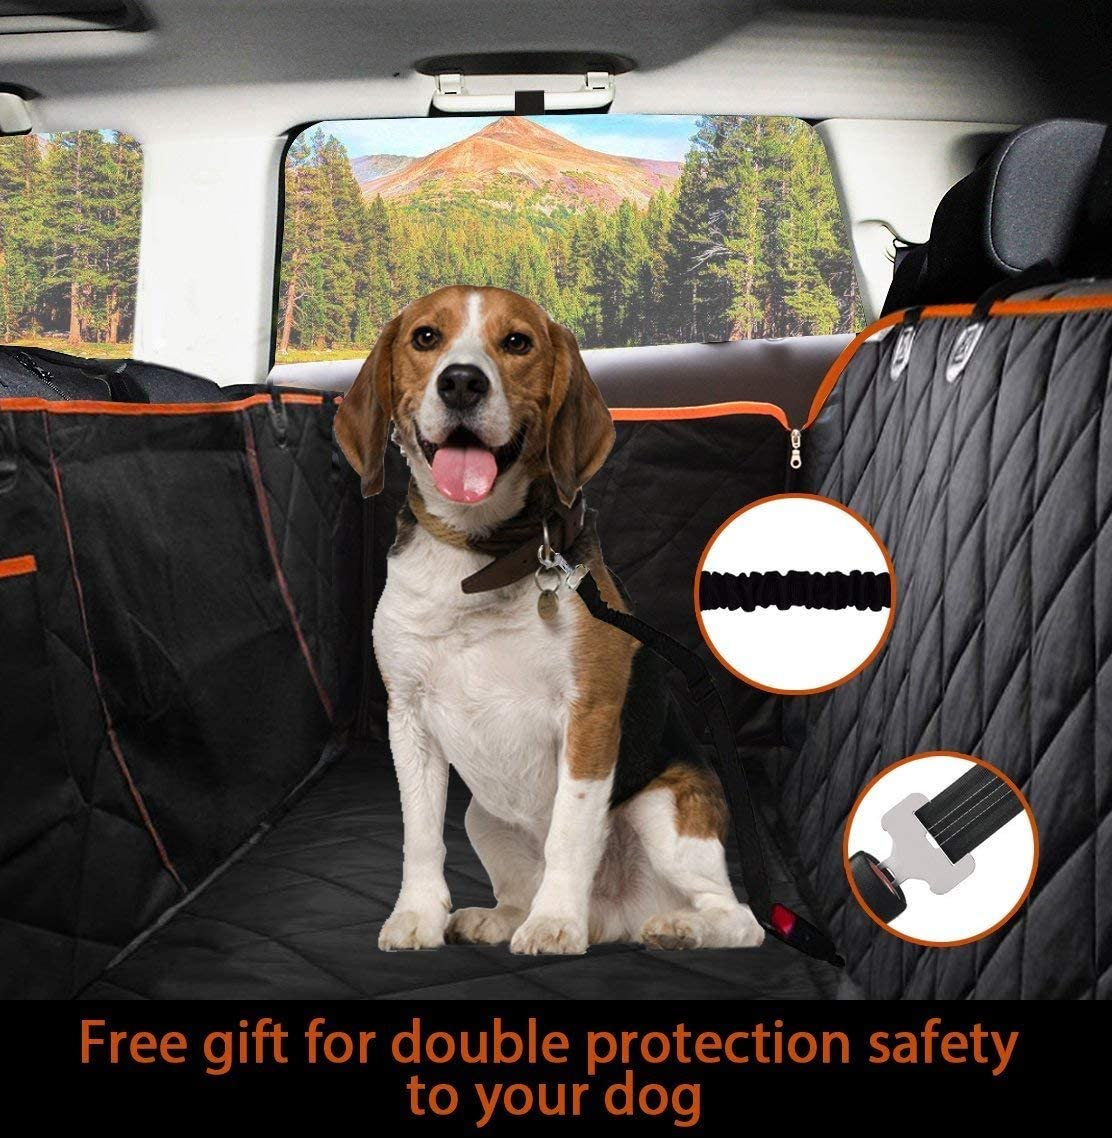 Flightbird Dog Seat Cover for Back Seat, Back Seat Cars,Waterproof Dog Car Seat Covers with Mesh Window,Car Seat Cover, pet Cargo Liner for SUV, Waterproof Durable Bumper Protector, Pet Cargo Liner,C